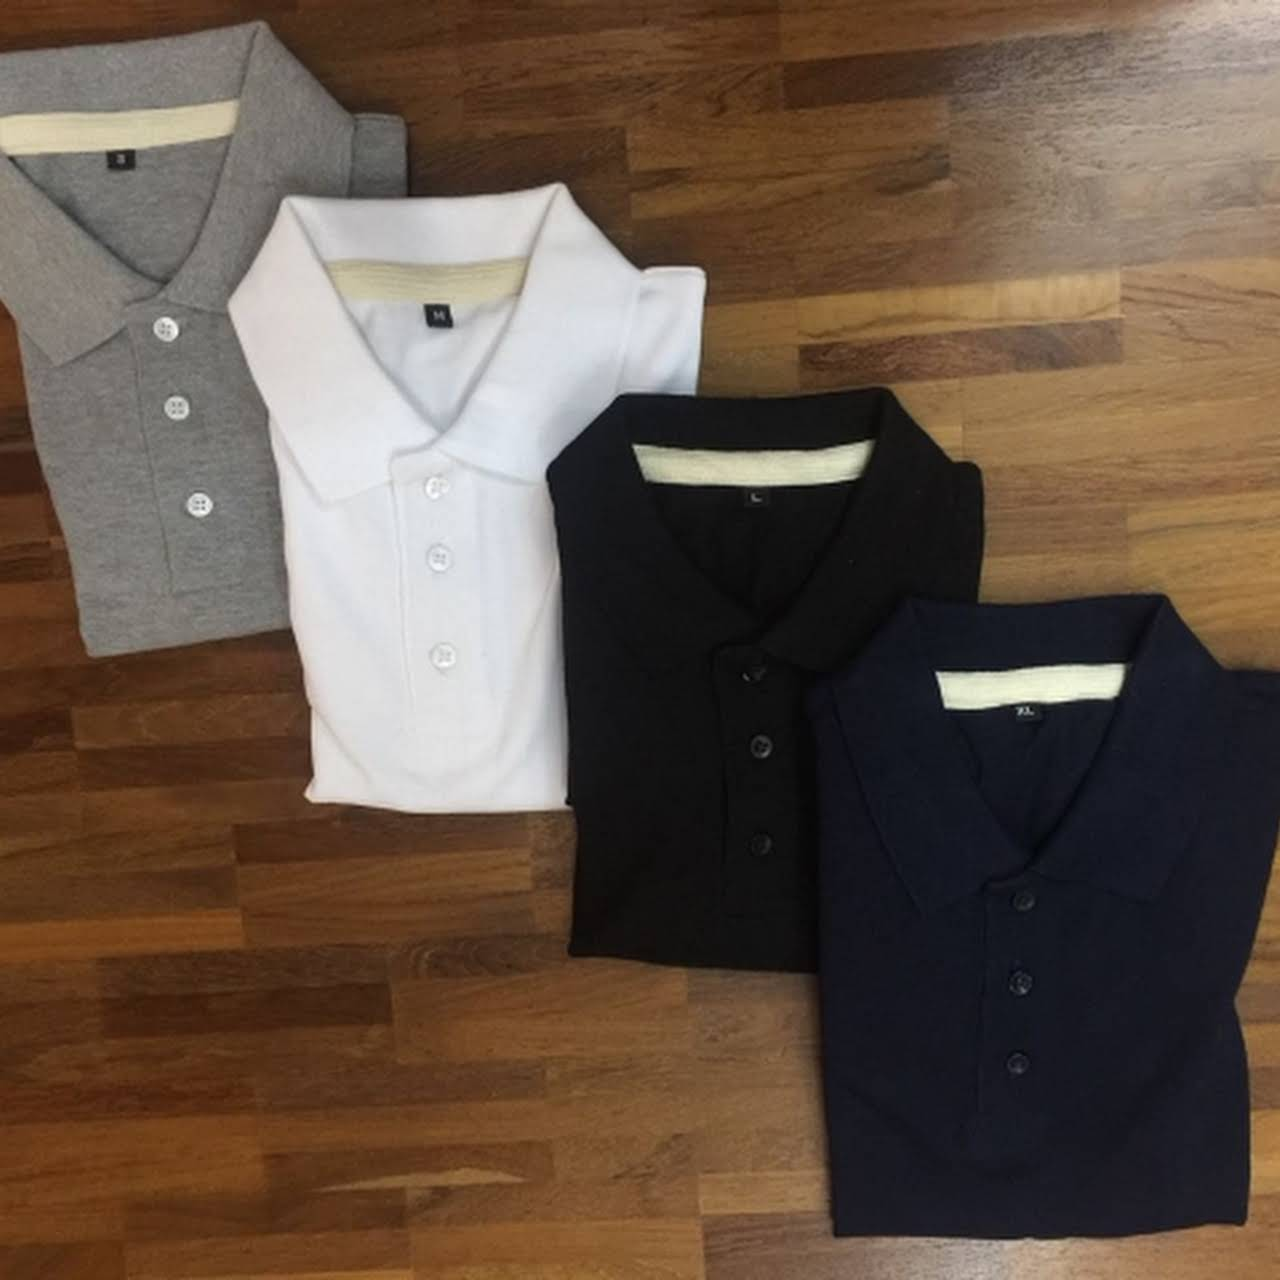 59bd750d222f Branded Shirts Lowest Price In Chennai - raveitsafe